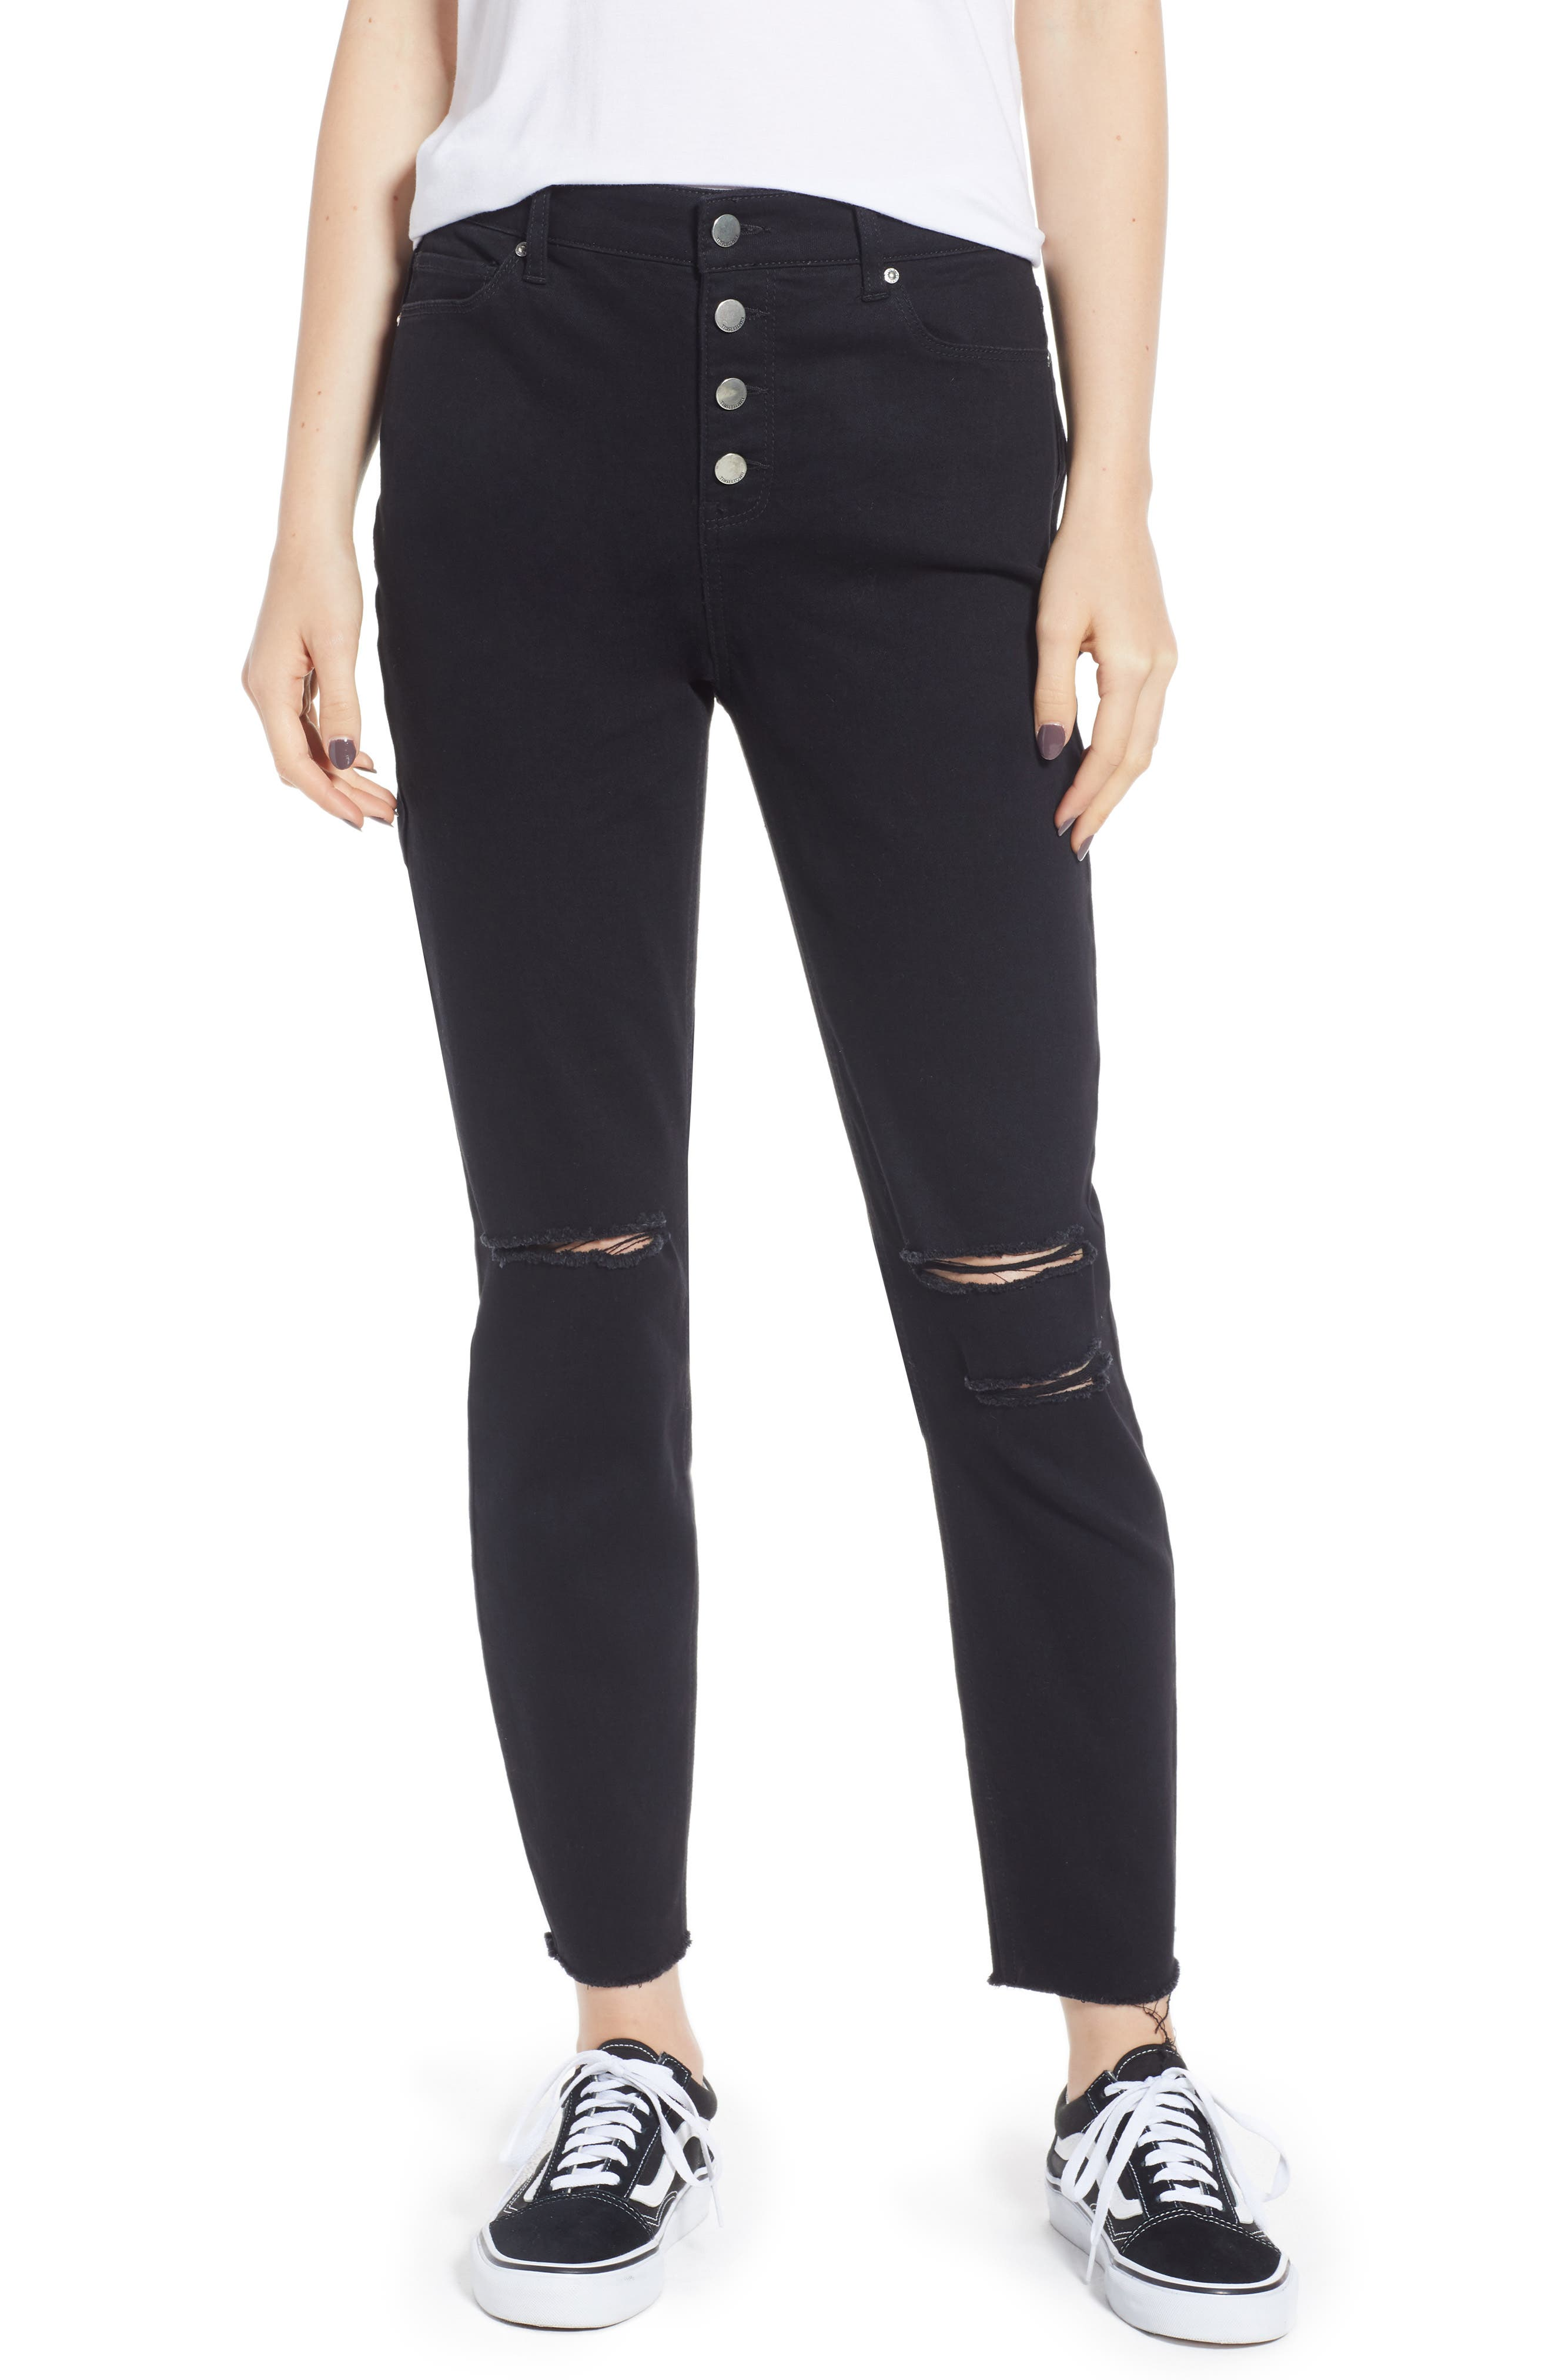 Women's Tinsel Ripped High Waist Ankle Skinny Jeans